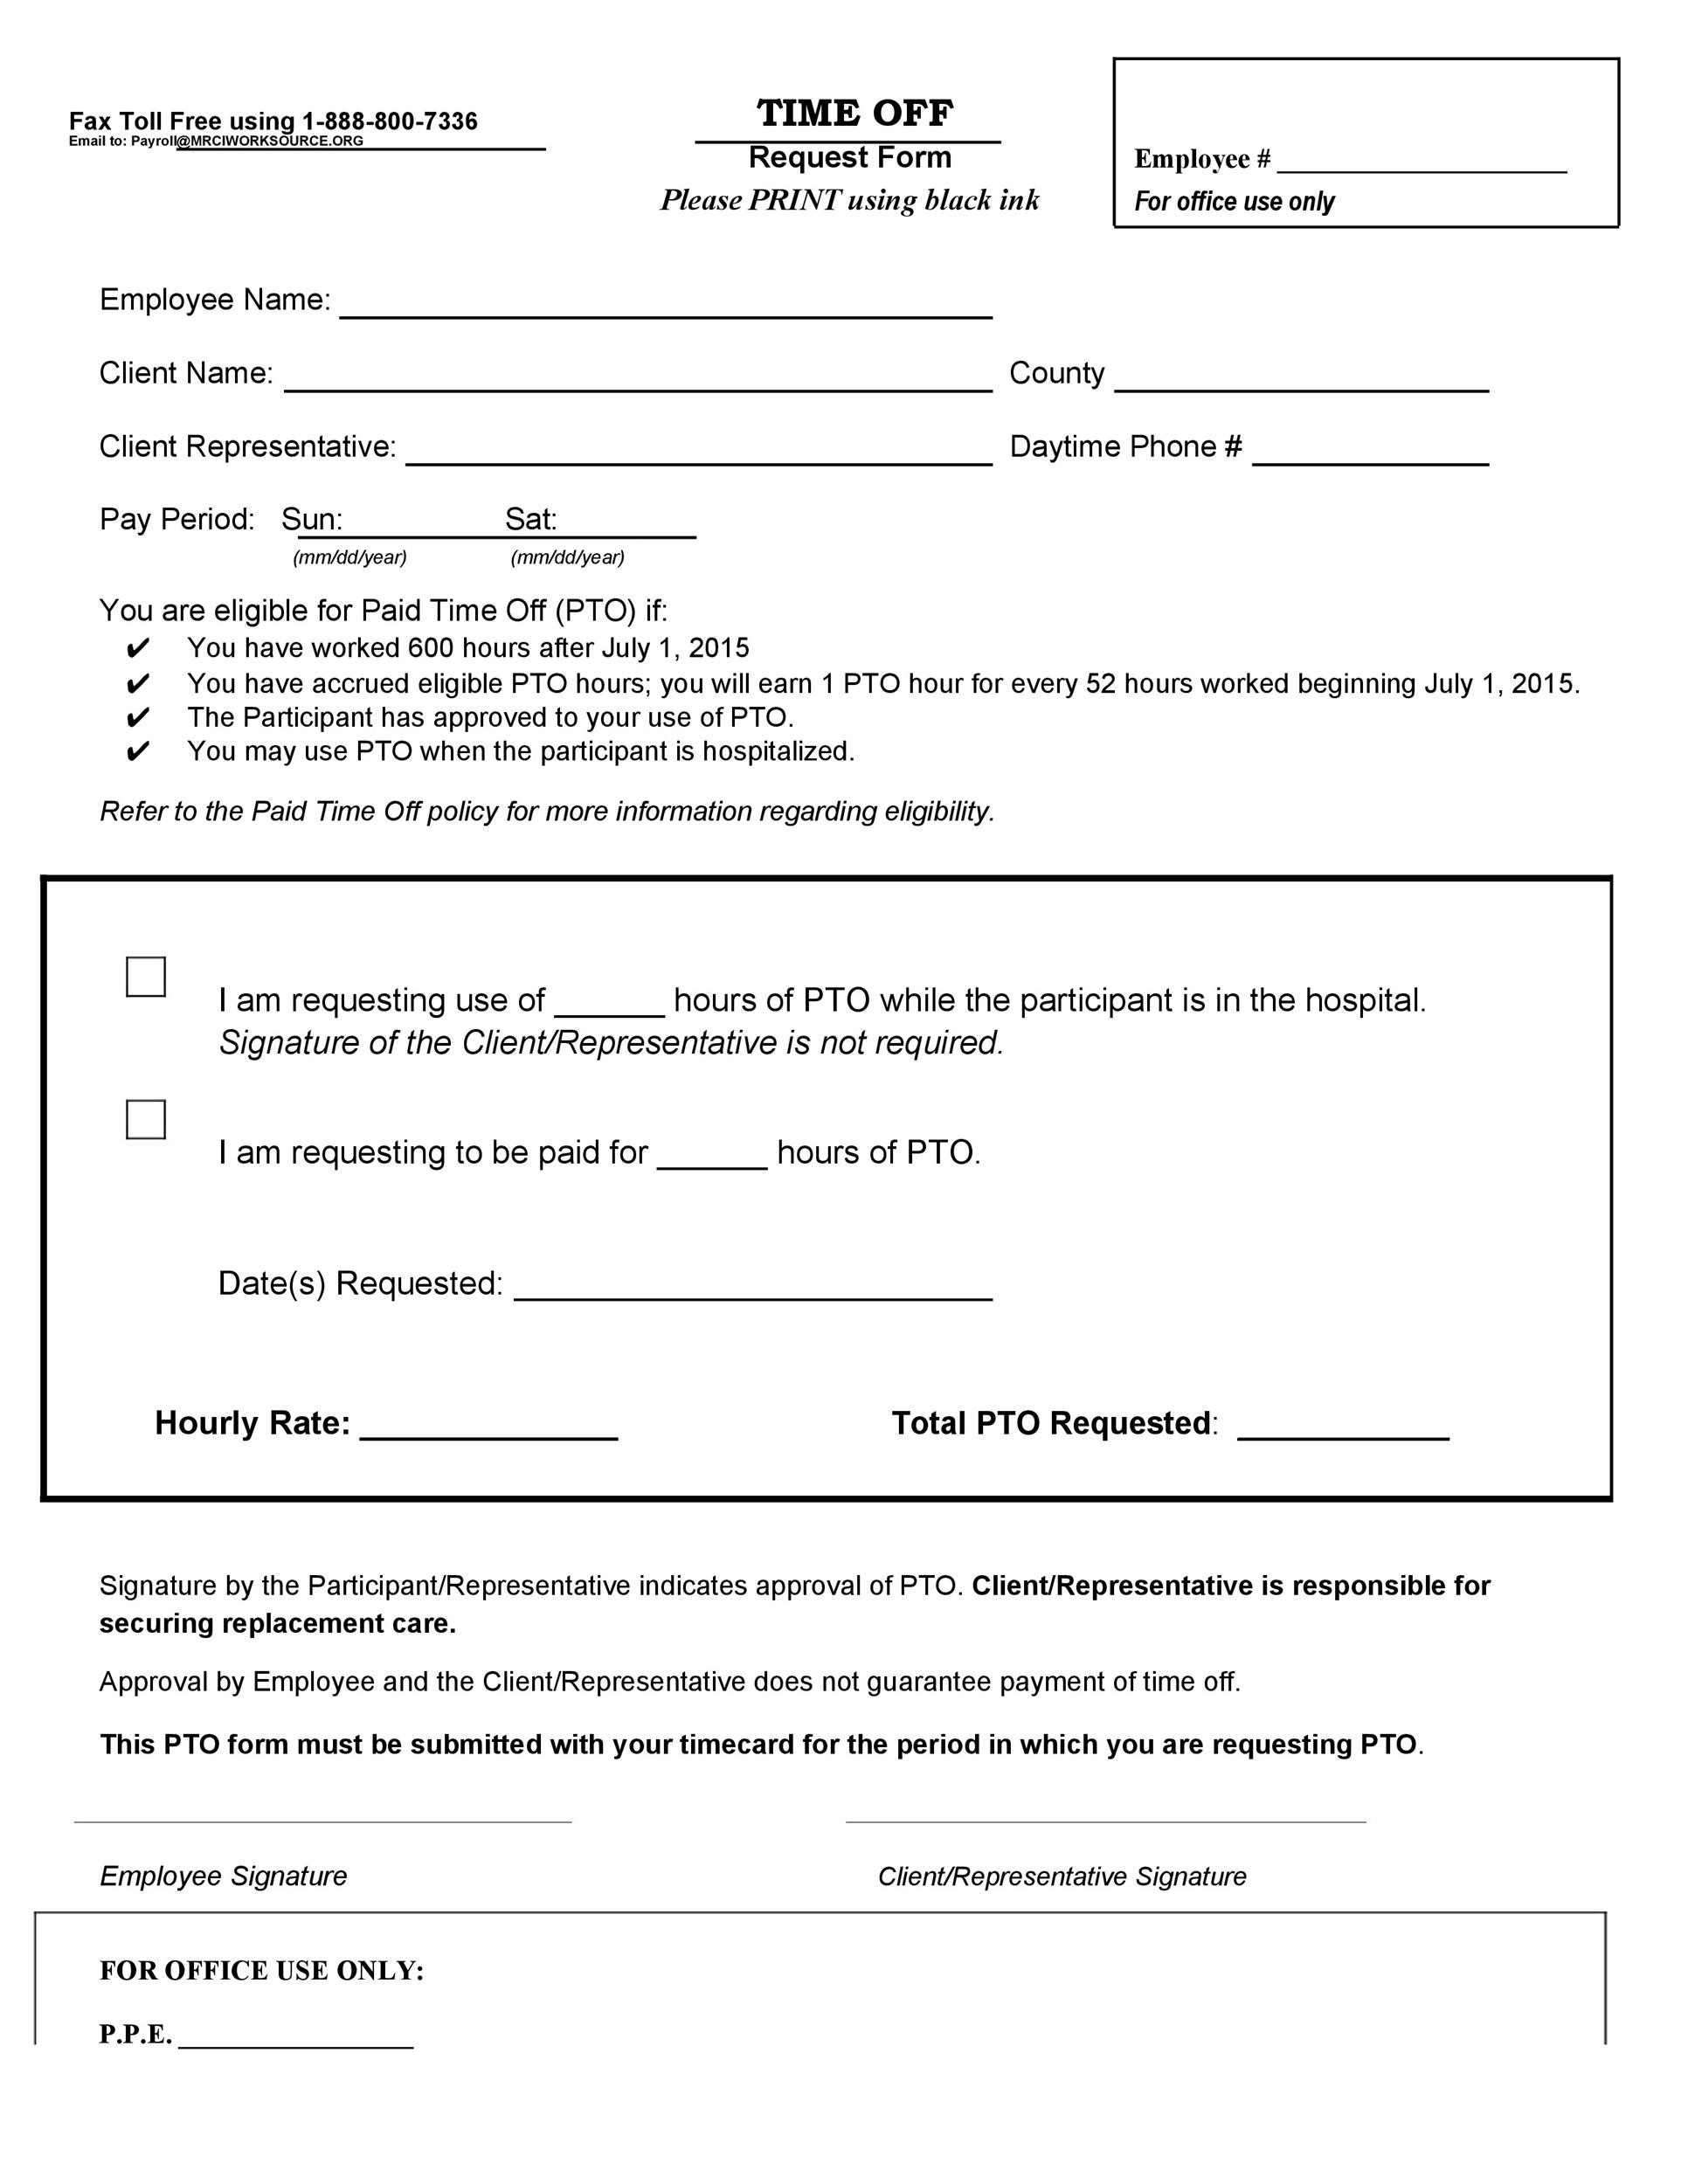 Zany image for free printable time off request forms